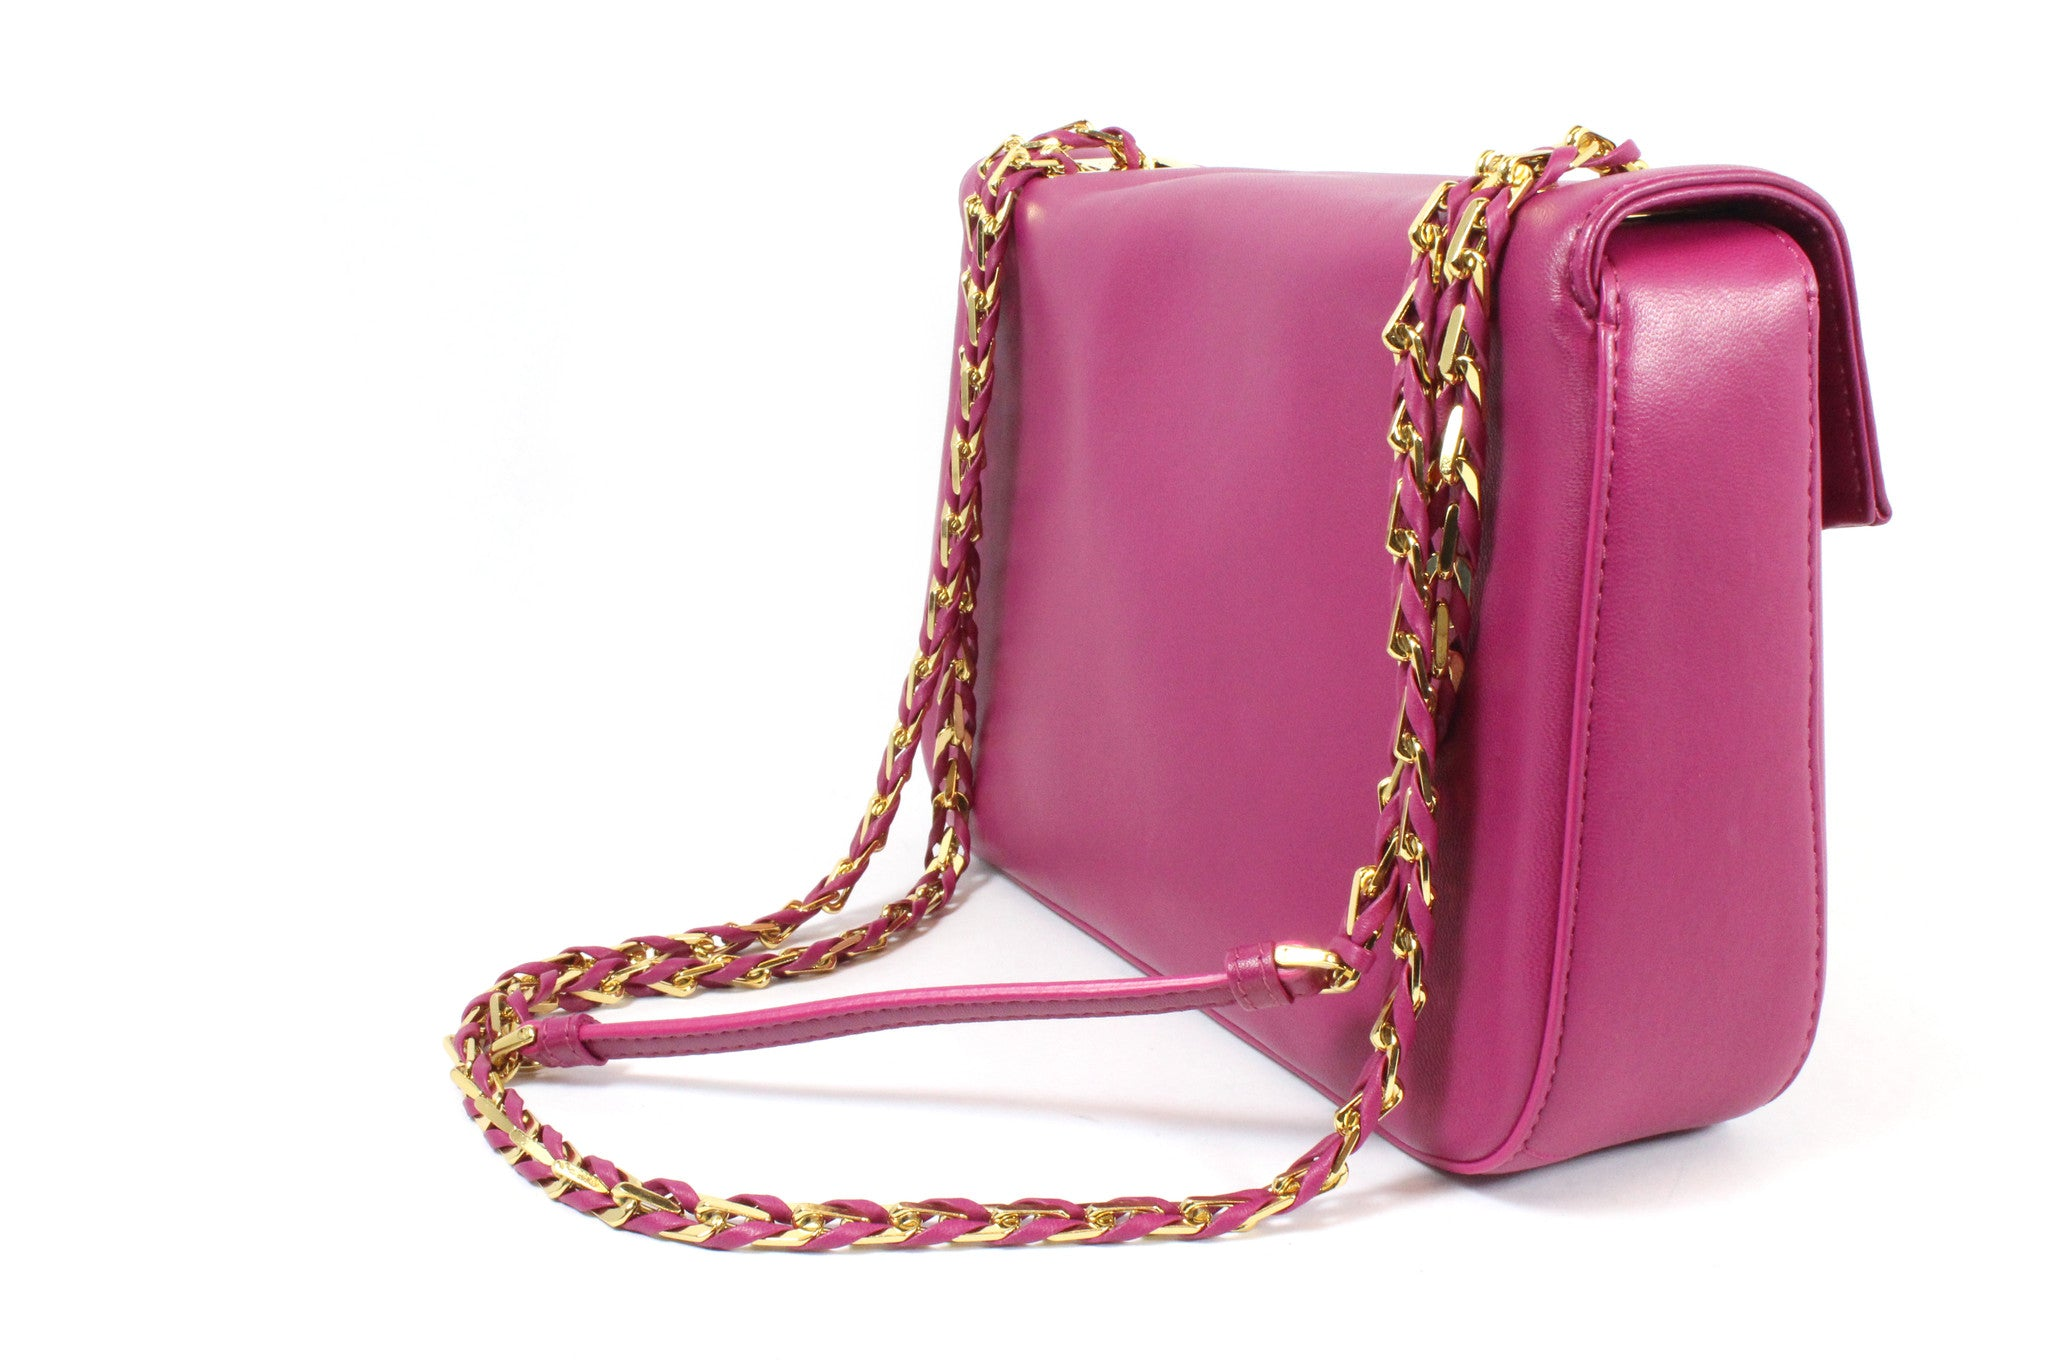 Fendi Cyclamen Pink Leather Logo Buckle 'Be Baguette' Bag - Encore Consignment - 1